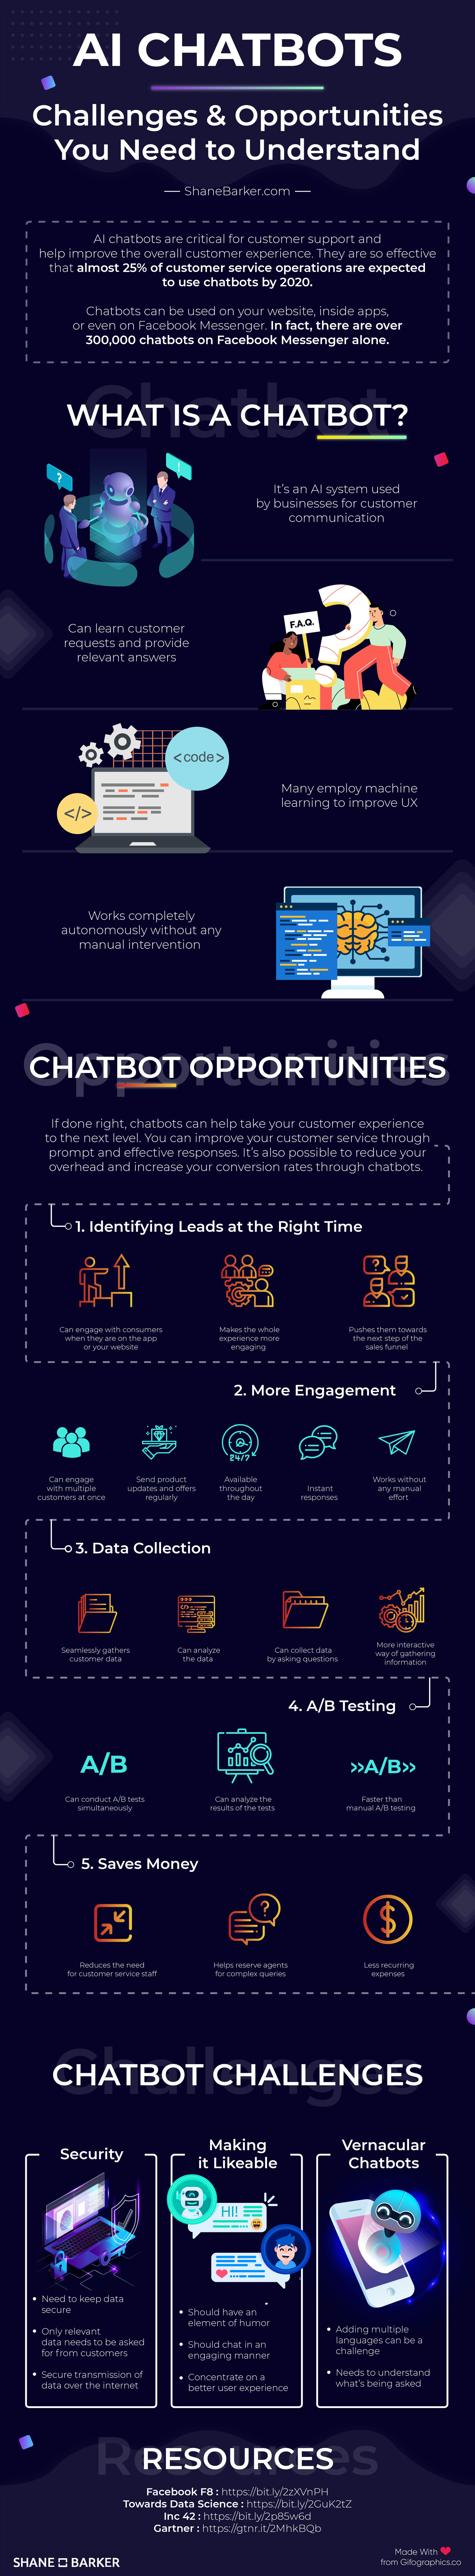 Challenges, Opportunities and advantages of an AI chatbot